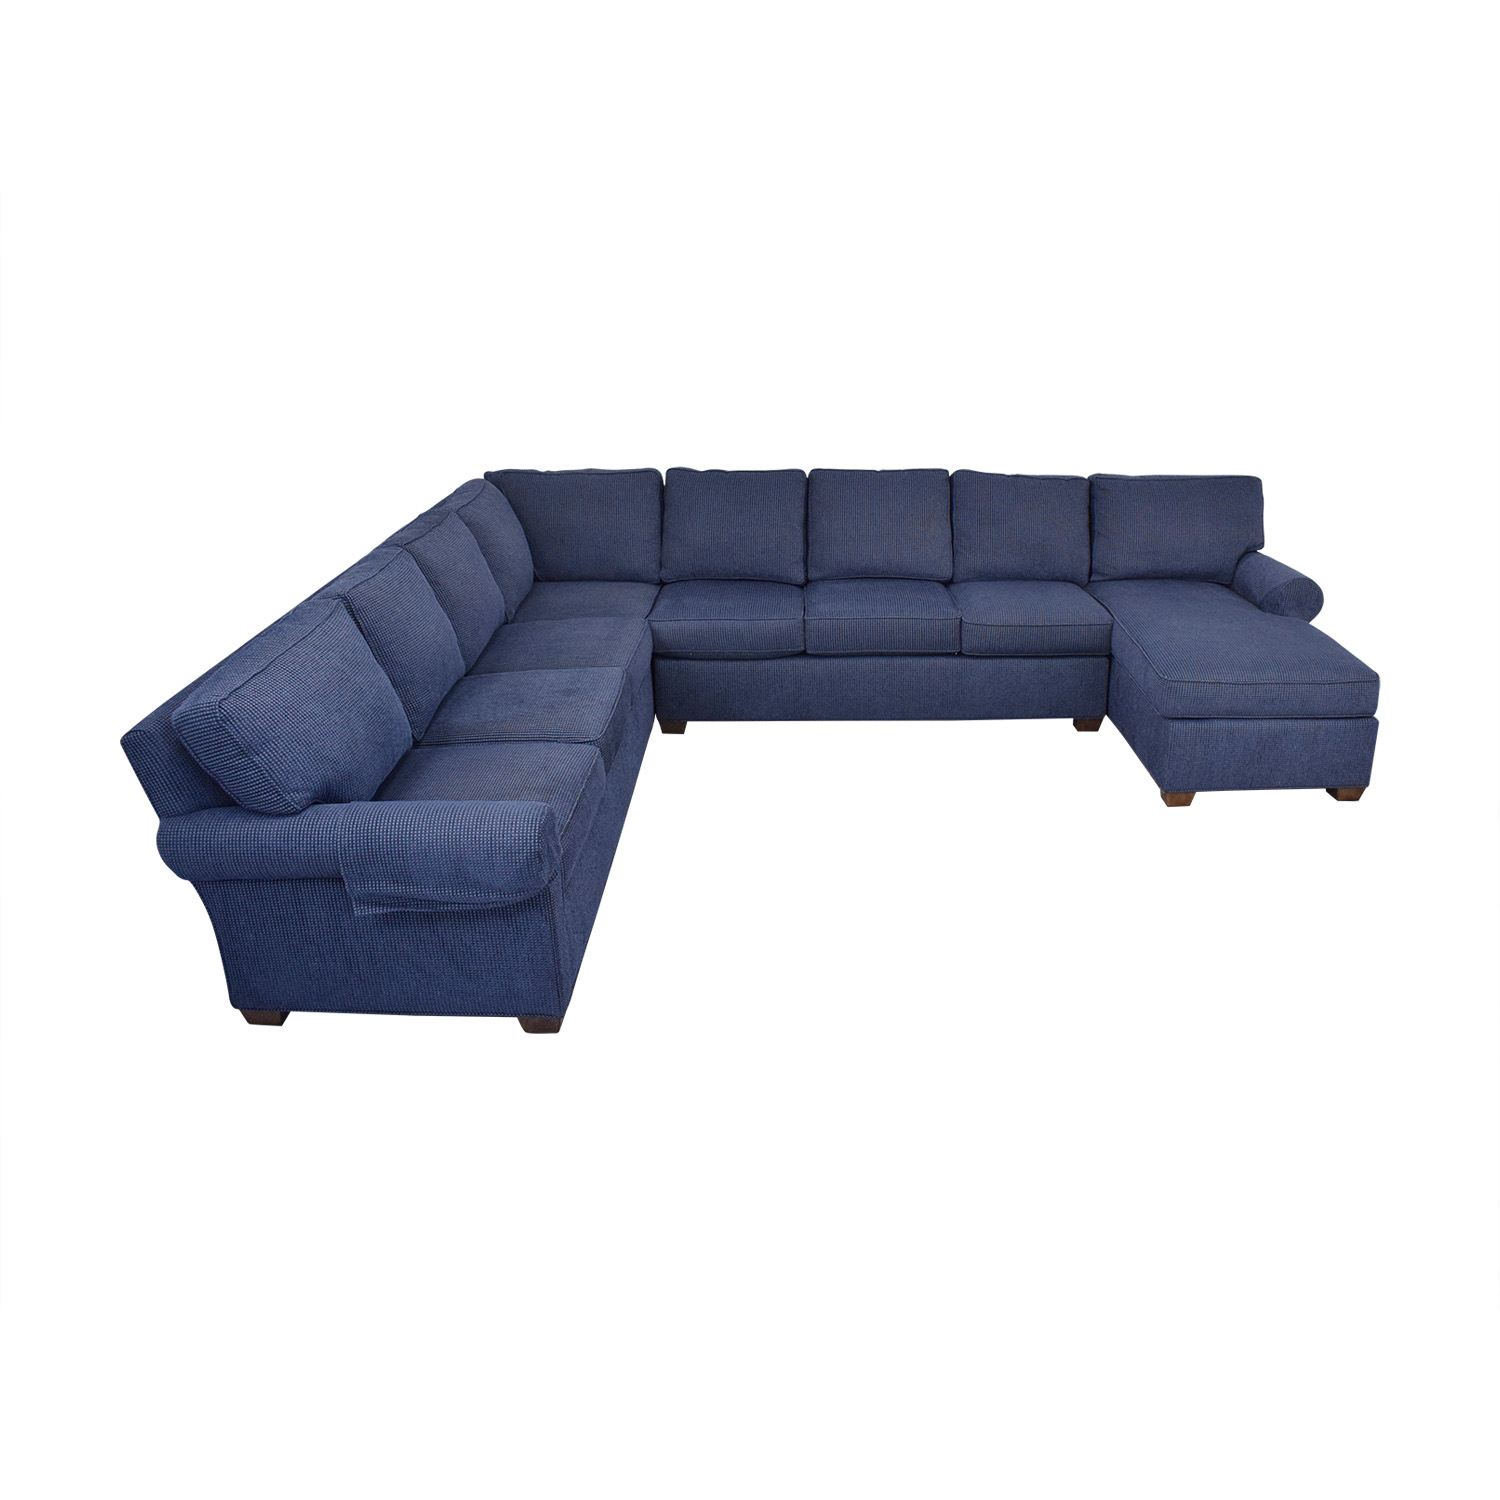 Wesley Hall Wellesley Hall Rolled Arm Sectional Sofa with Chaise discount